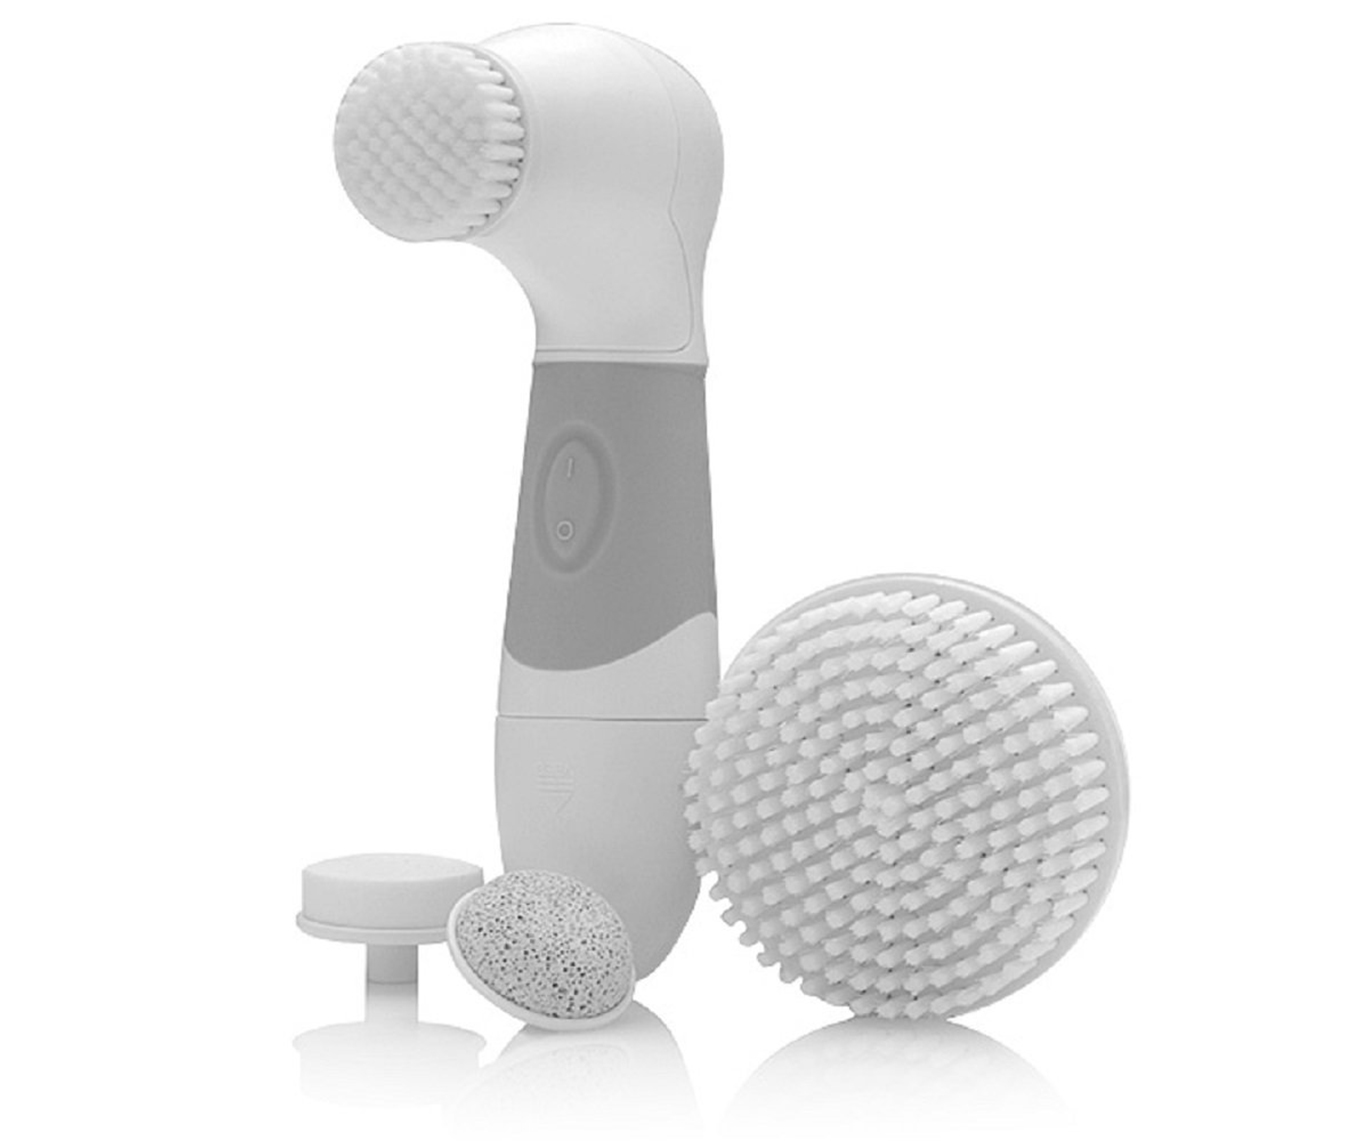 facial-brush-skin-care-cleansing-system-acne-treatment